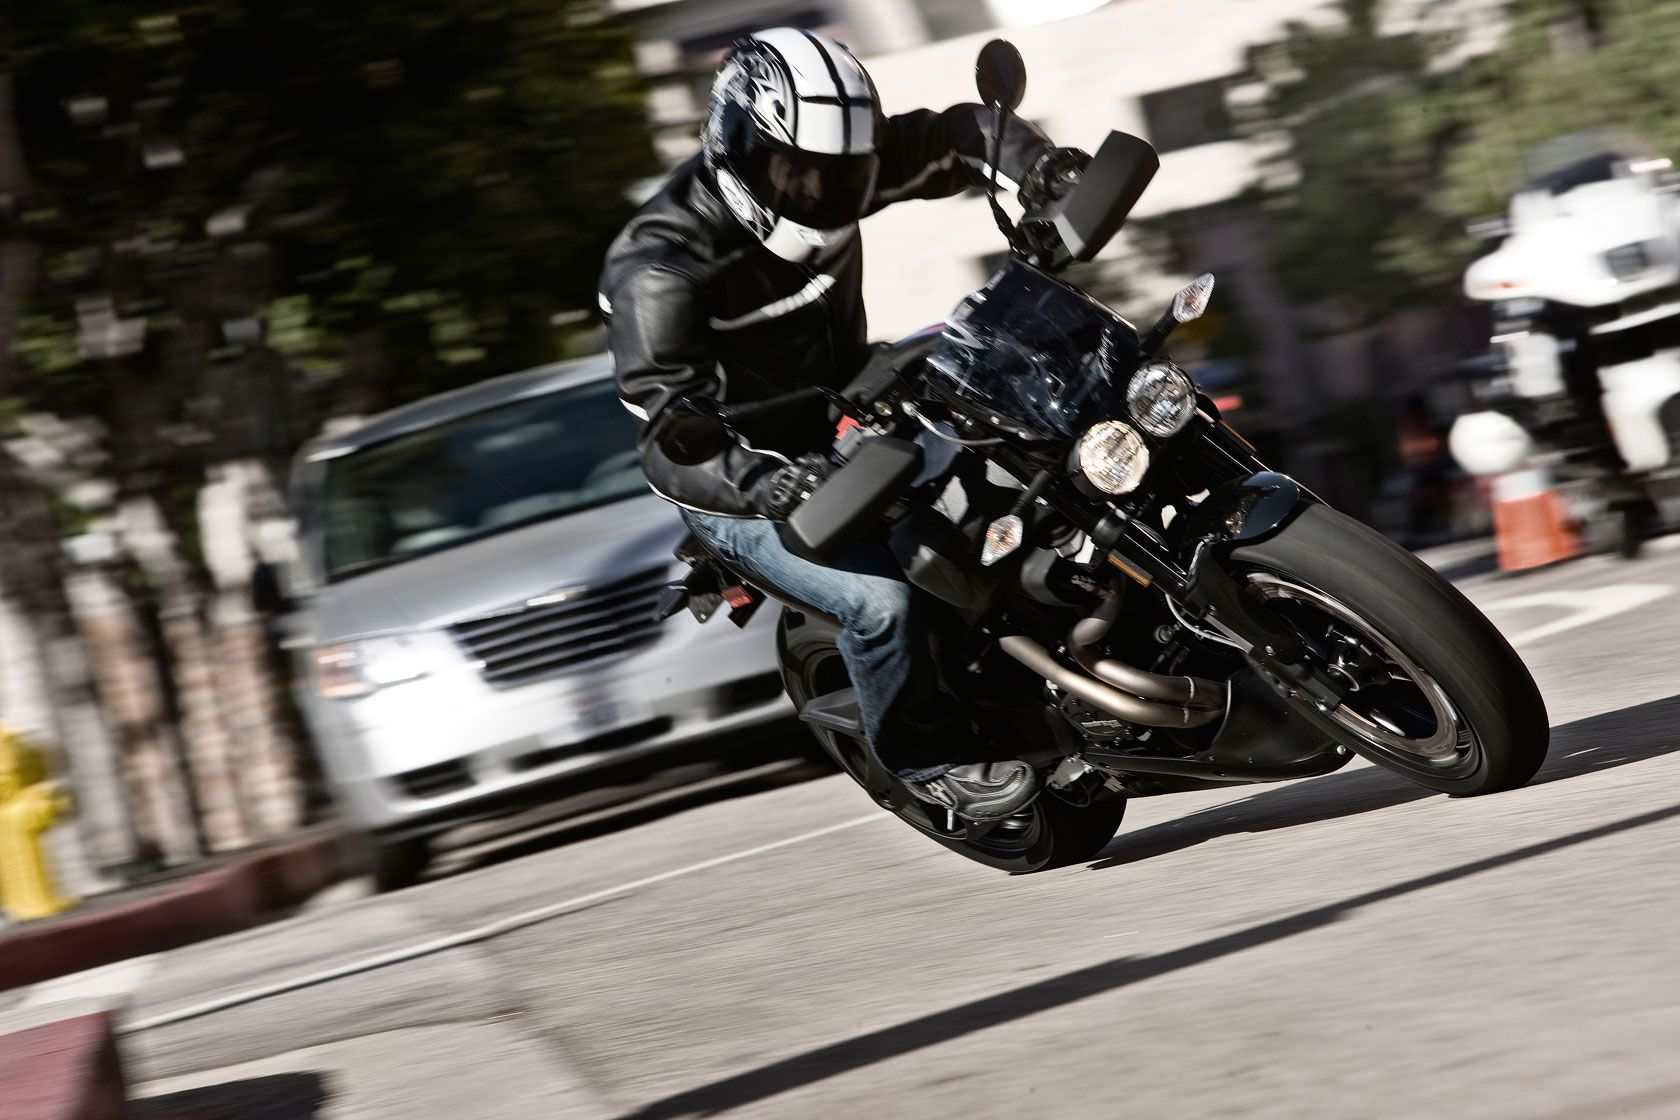 XB12Ss Lightning Long, 2008-2009 (With images) | Buell